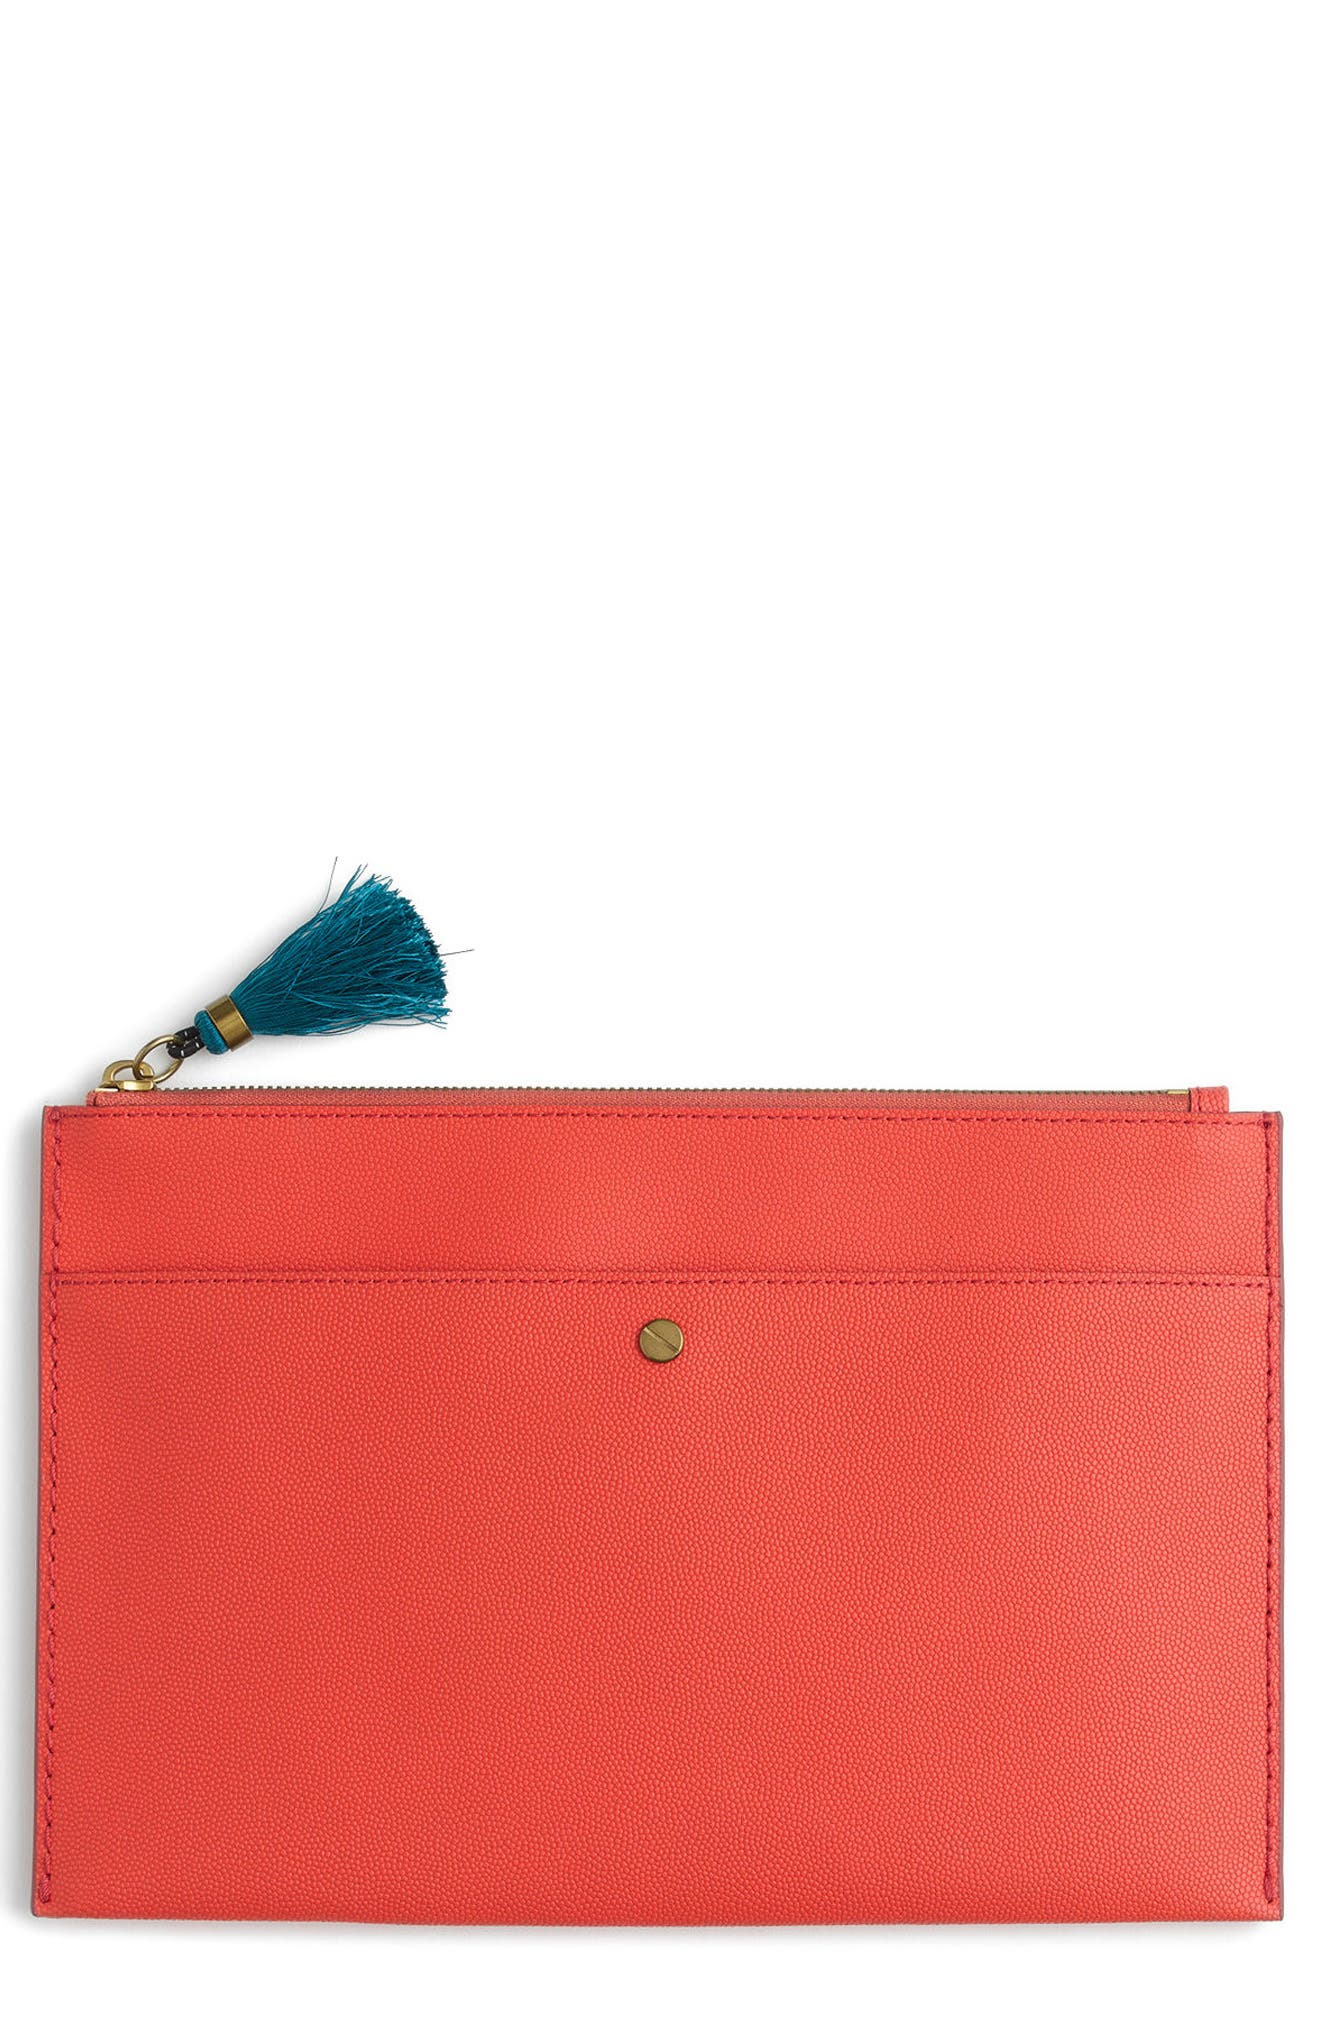 Alternate Image 1 Selected - J. Crew Large Leather Zip Pouch